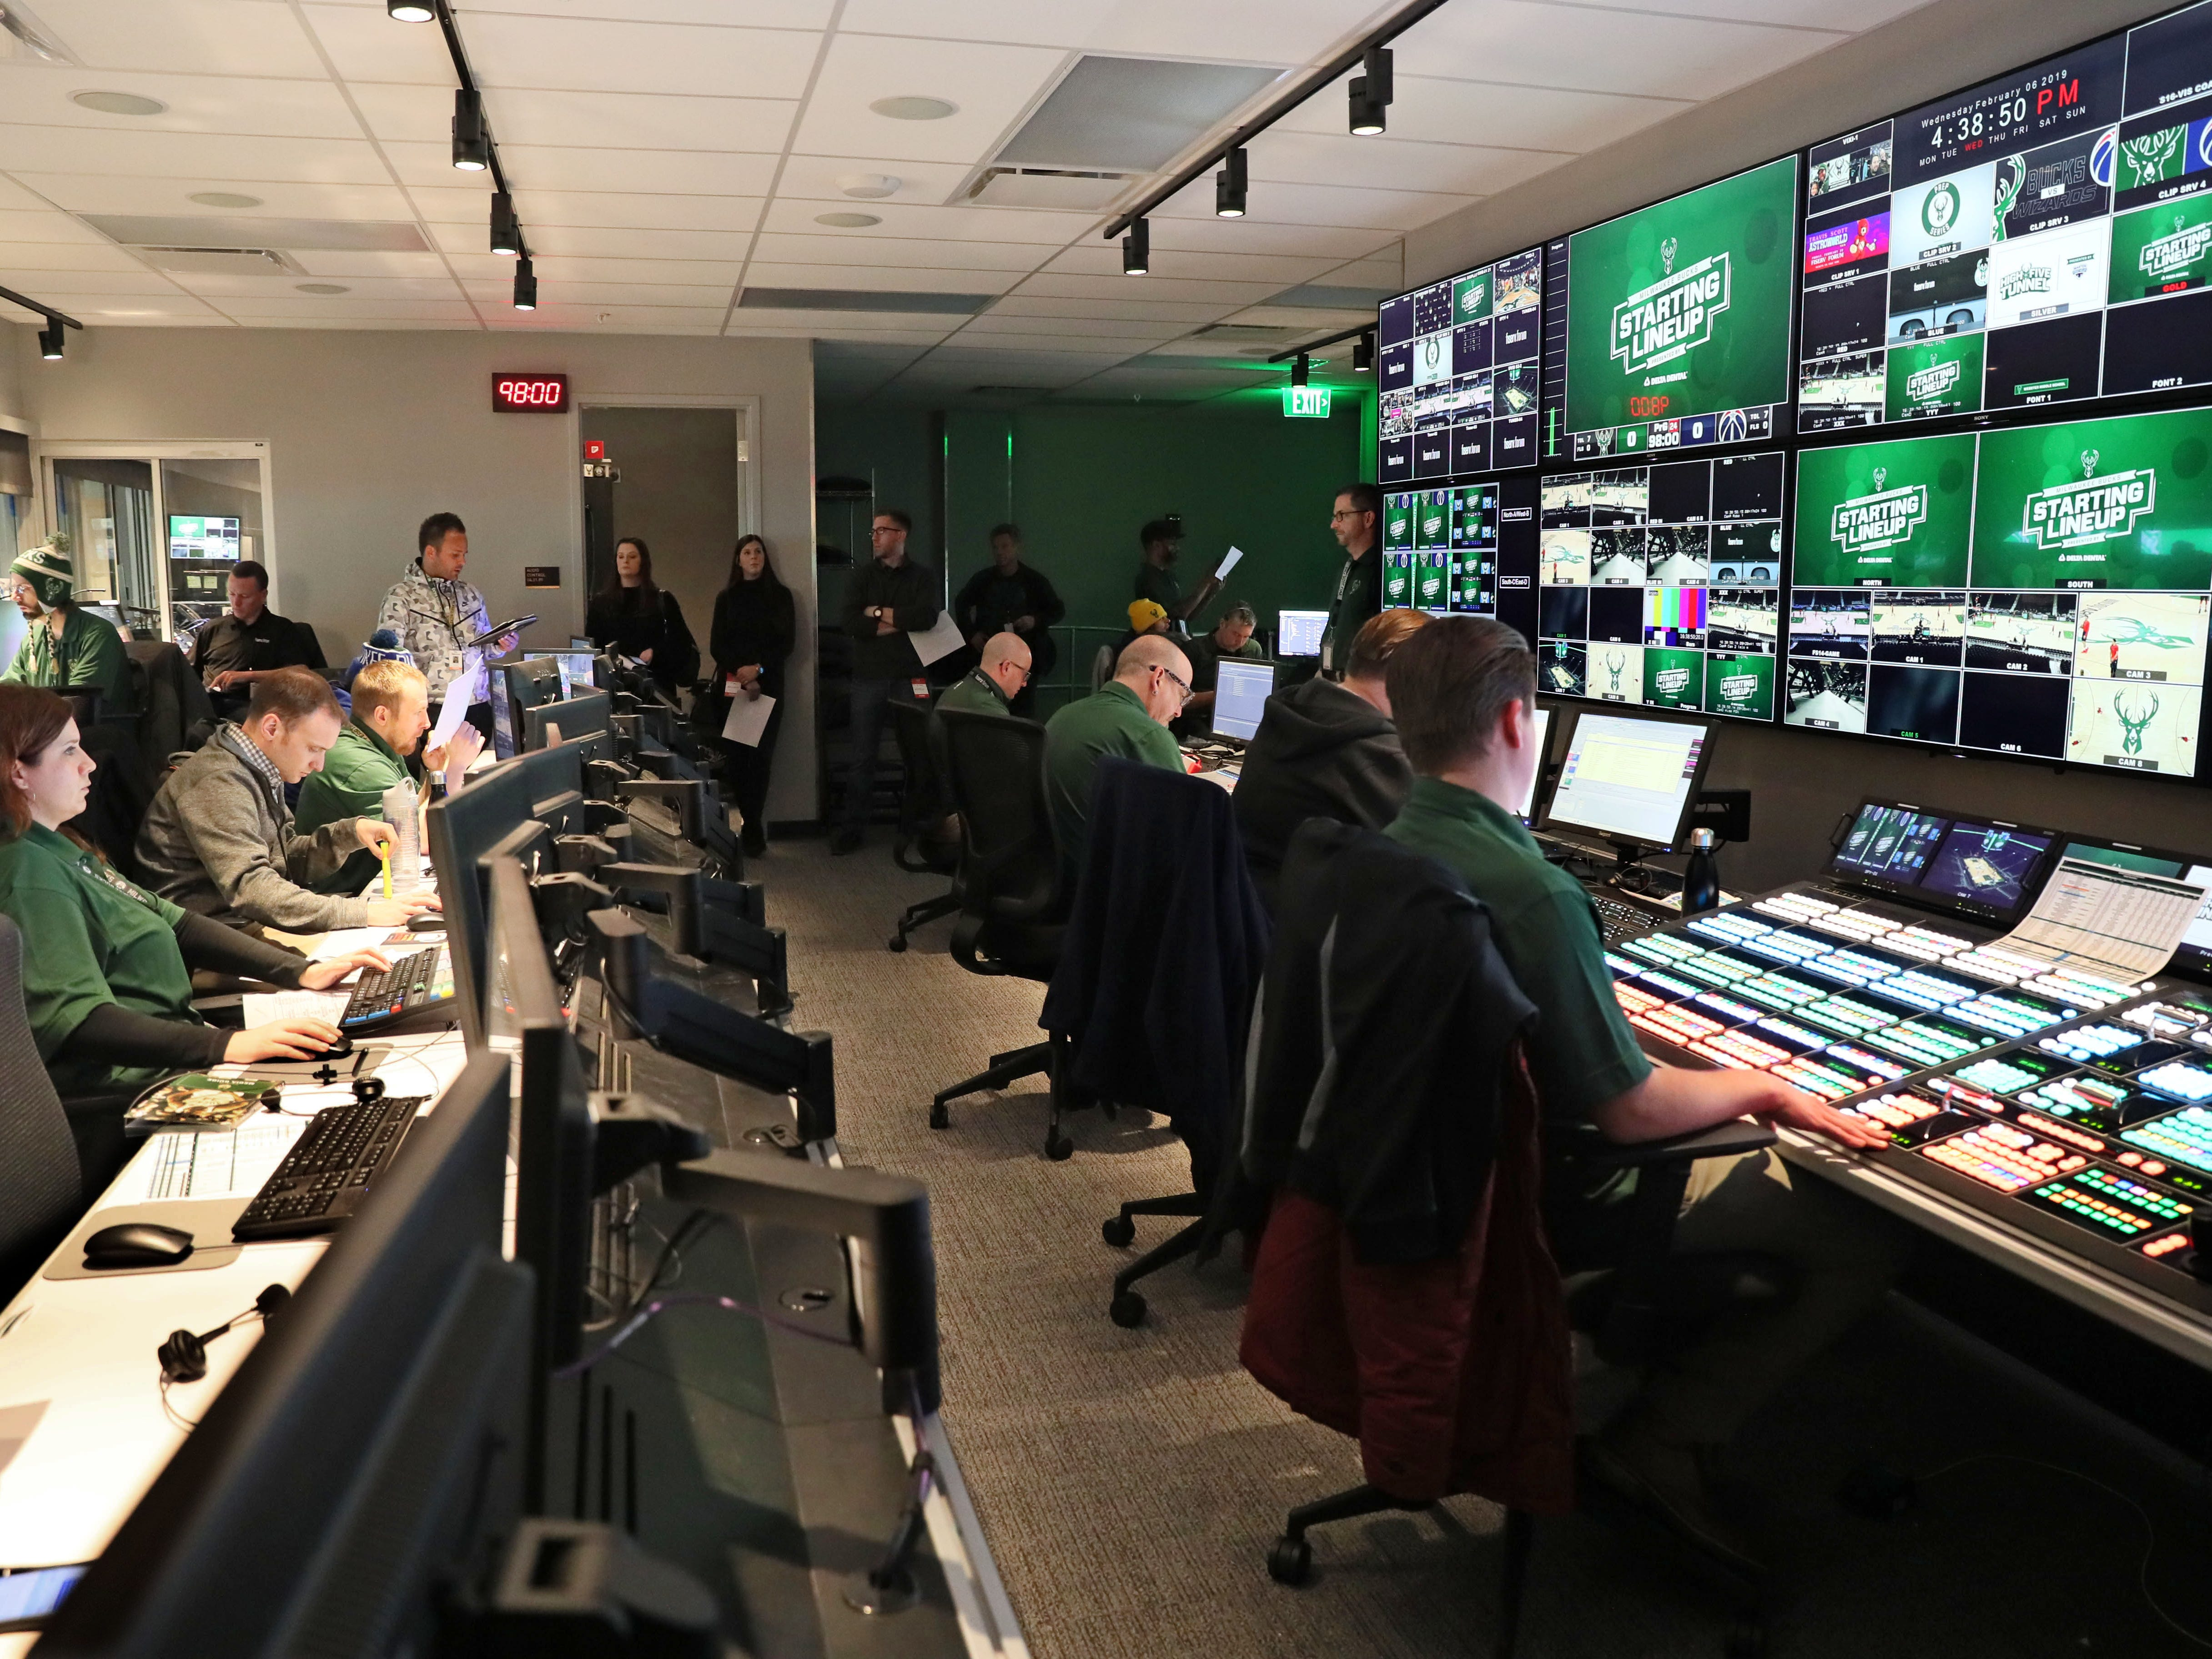 Johnny Watson (rear center in white), the Milwaukee Bucks executive in charge of all in-arena activities during games, meets with the control room staff before the game starts to run through the list of entertainment activities.